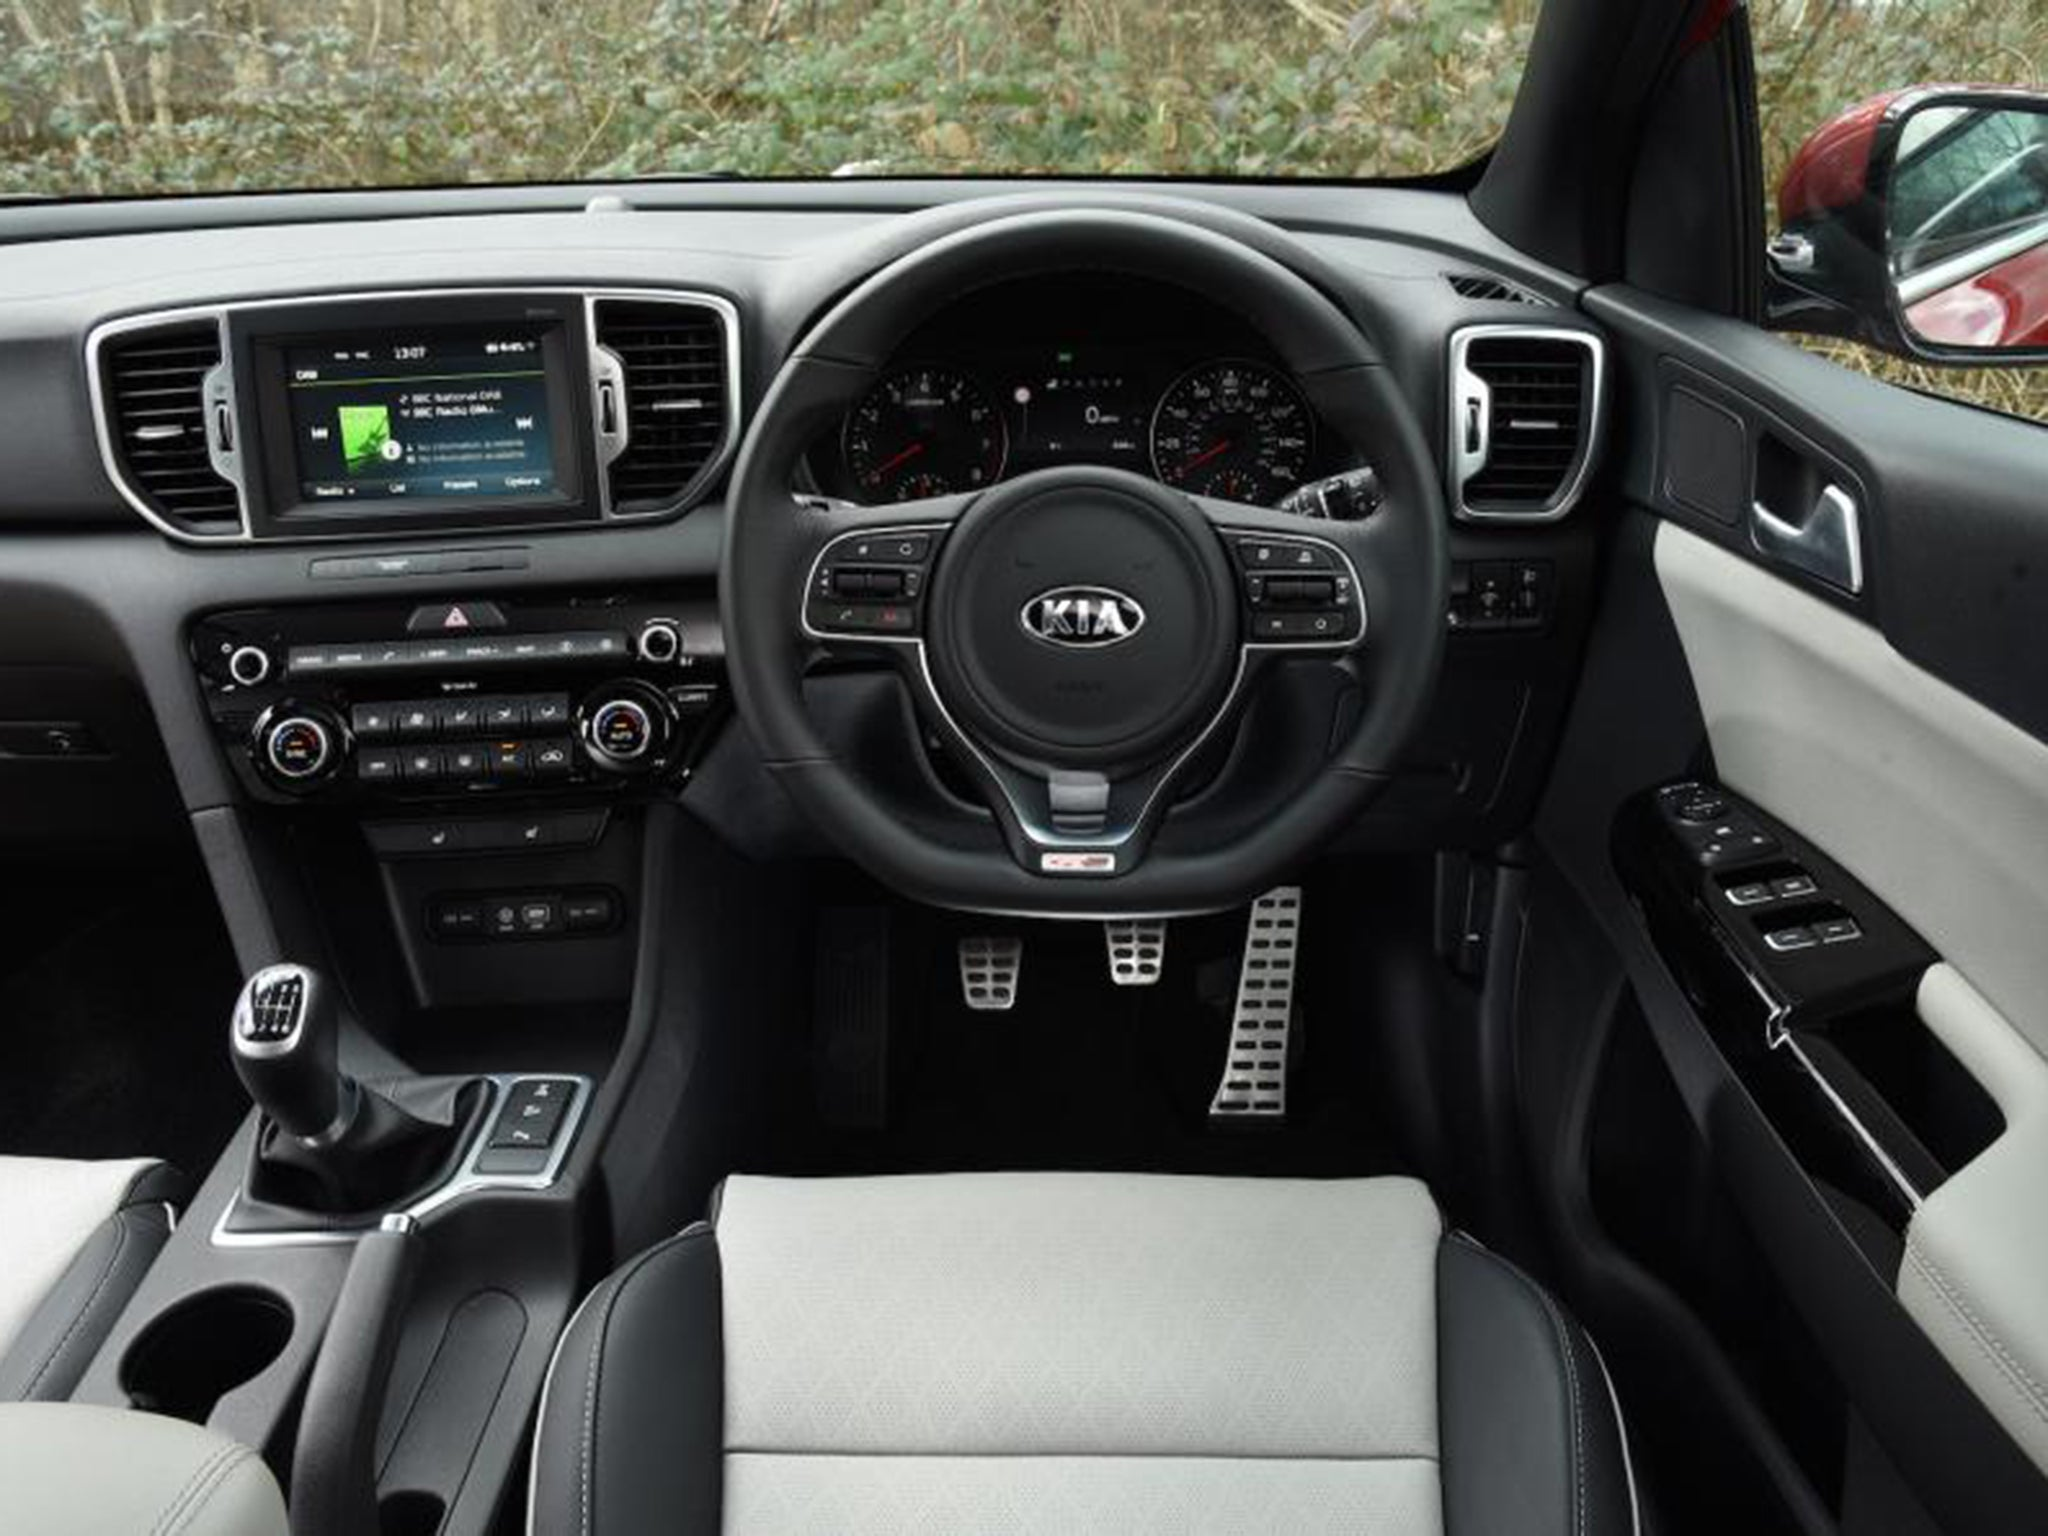 Kia Sportage 1.6 T-GDi GT-Line, car review: SUV looks more fun than ...